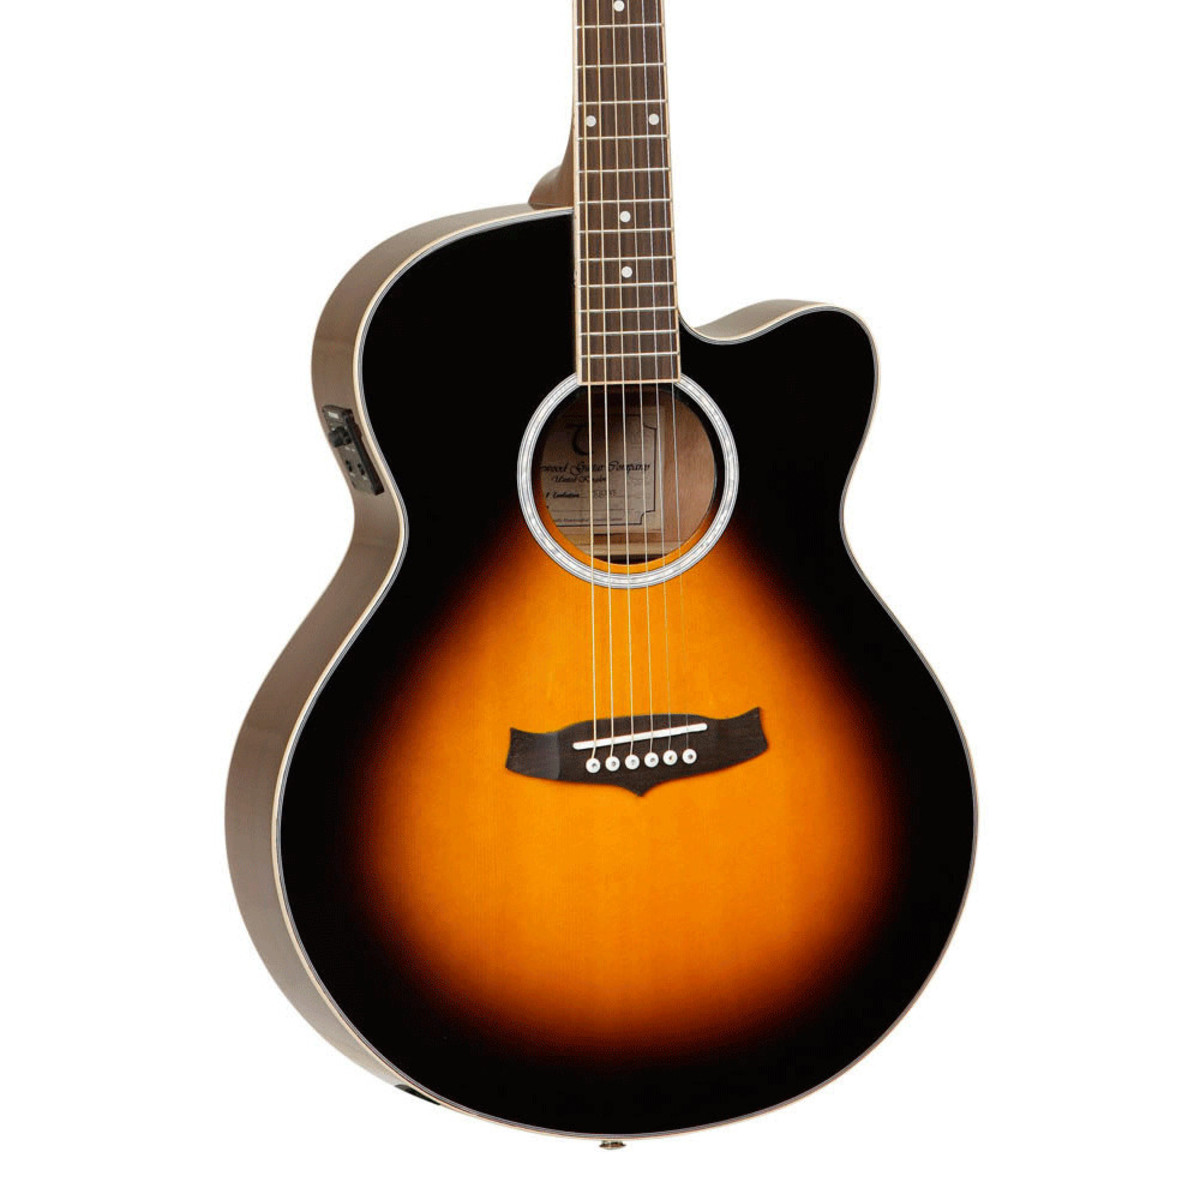 Disc tanglewood discovery super jumbo electro acoustic for The tanglewood